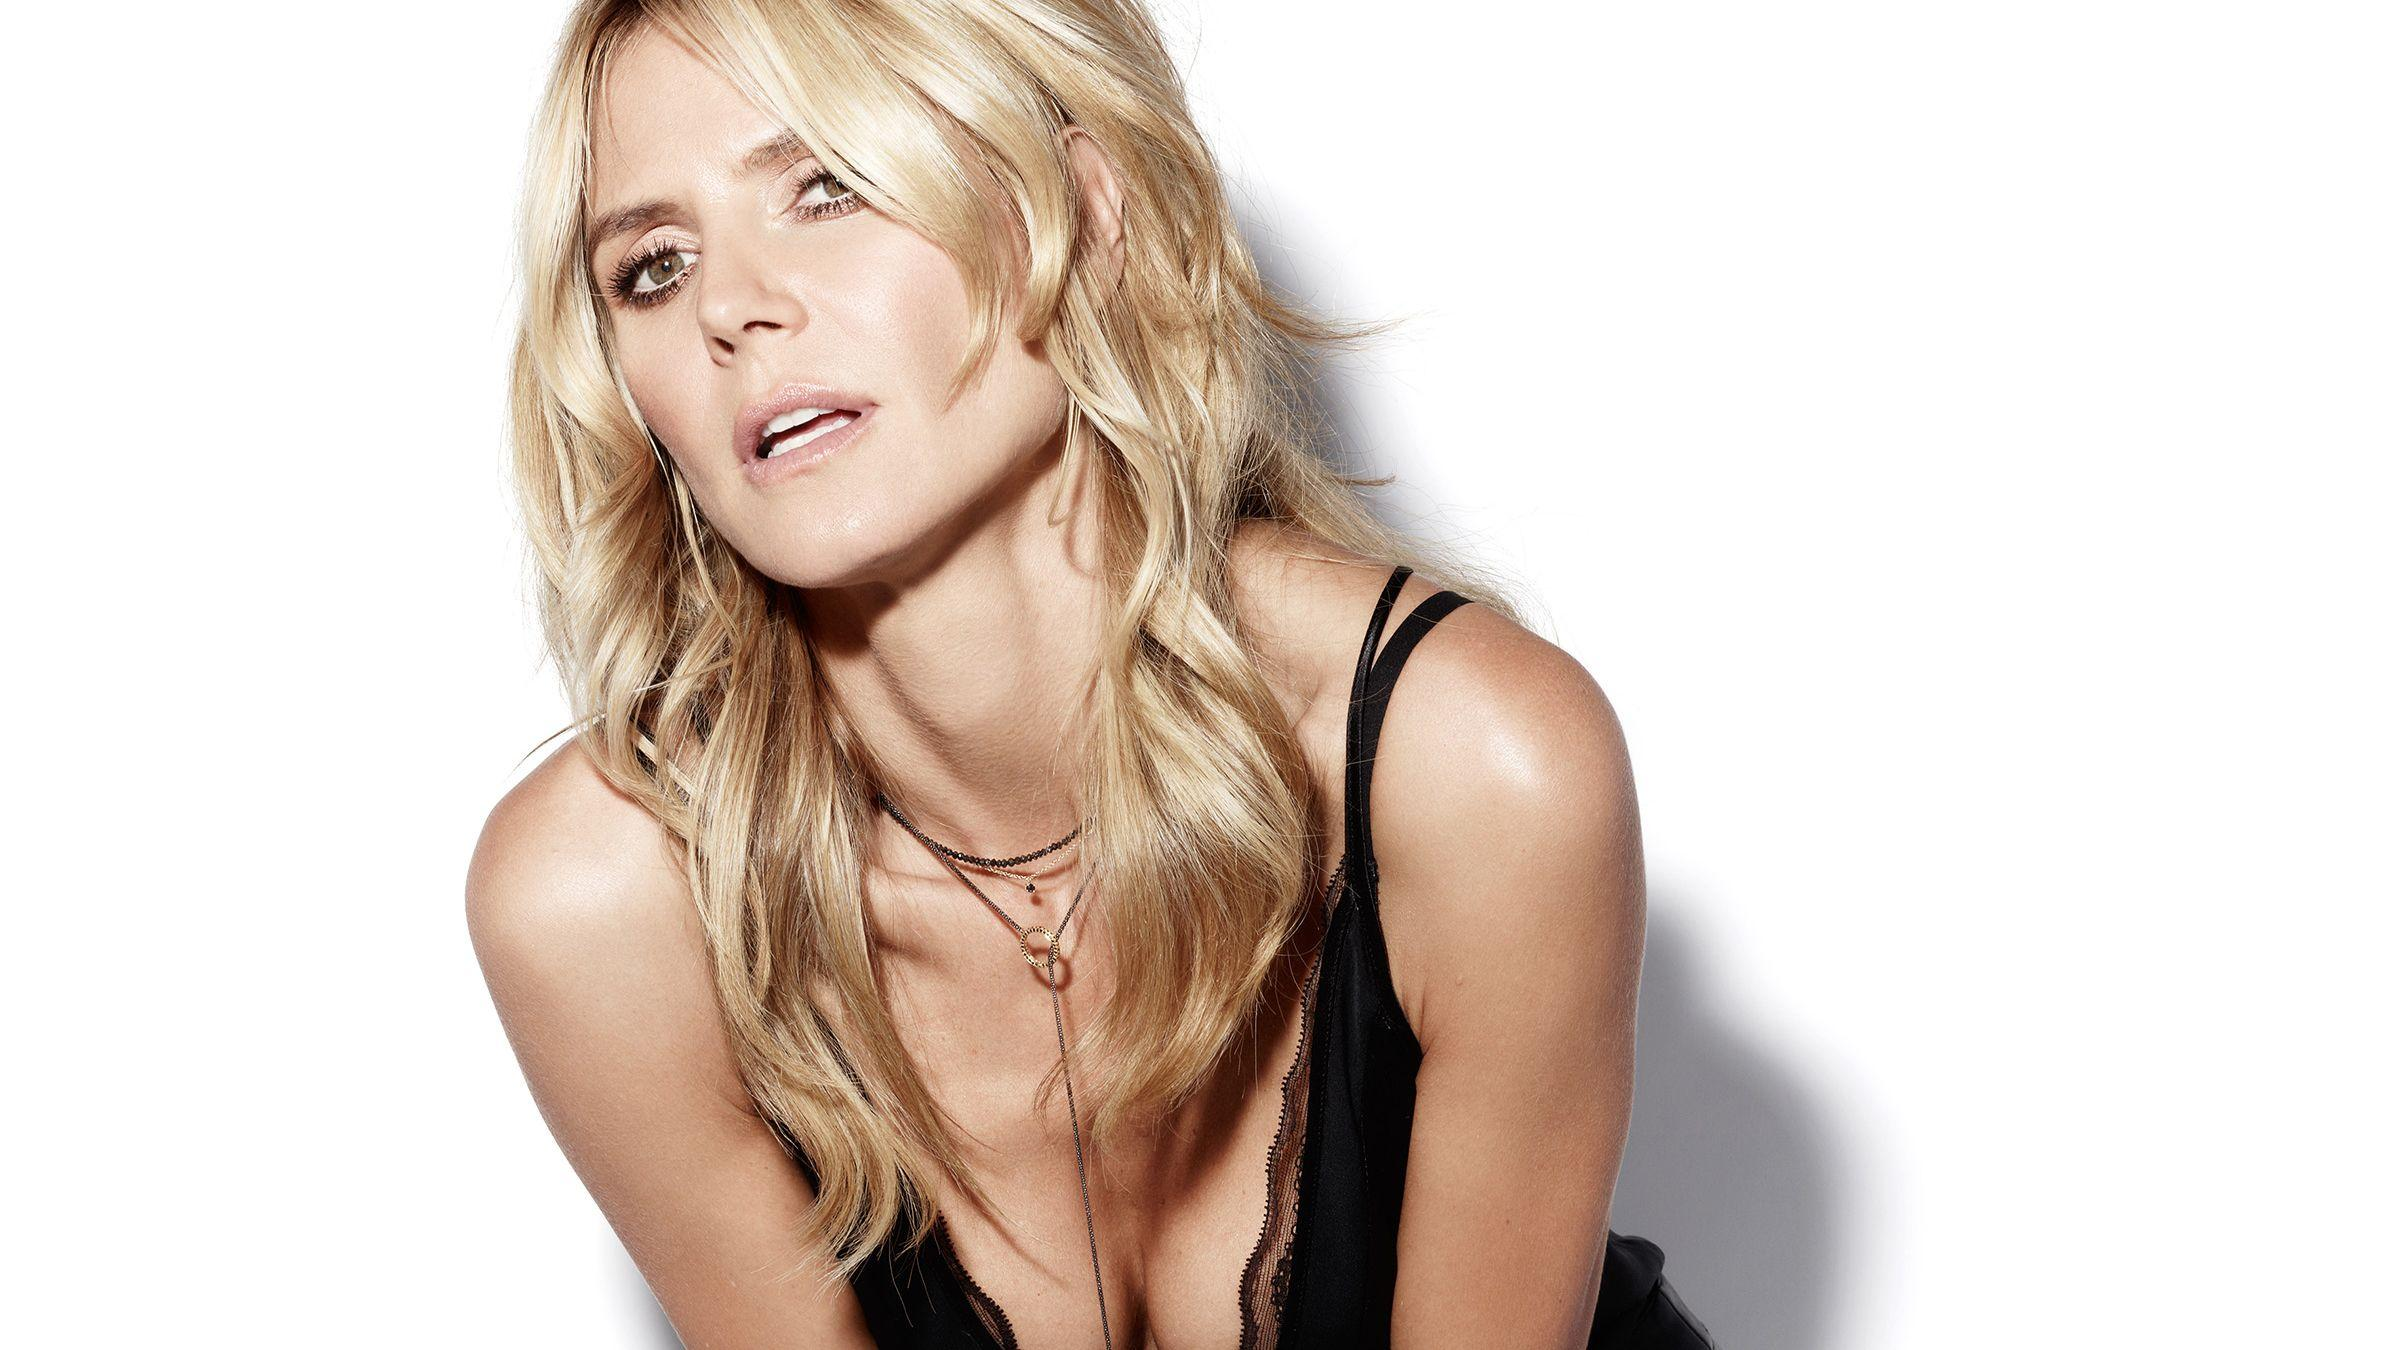 Heidi Klum Wallpapers Image Photos Pictures Backgrounds